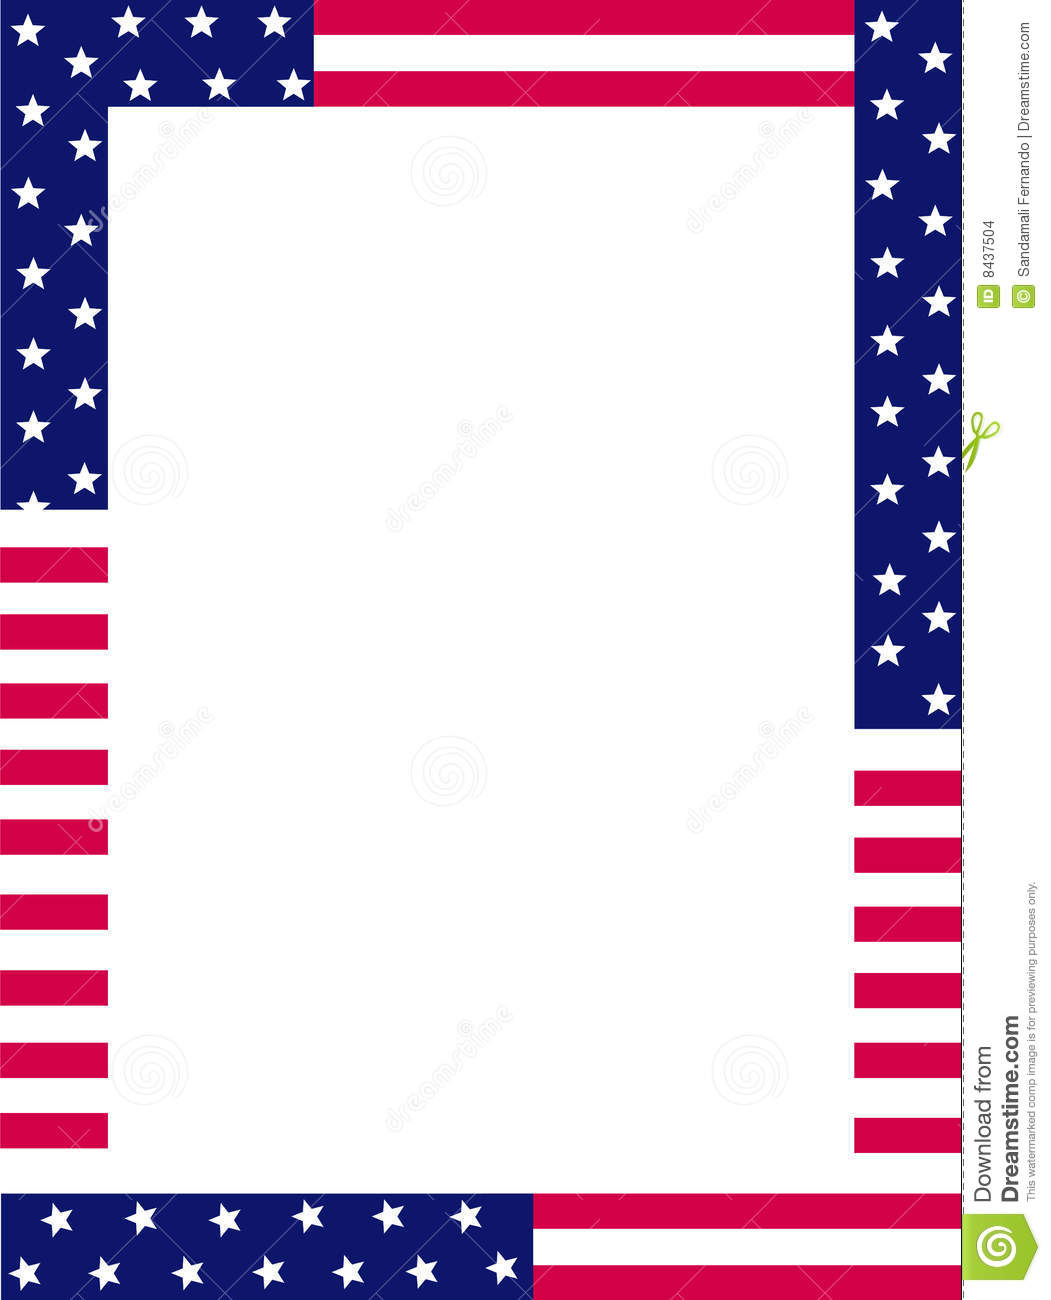 Blue and red patriotic stars and stripes page border / frame design.